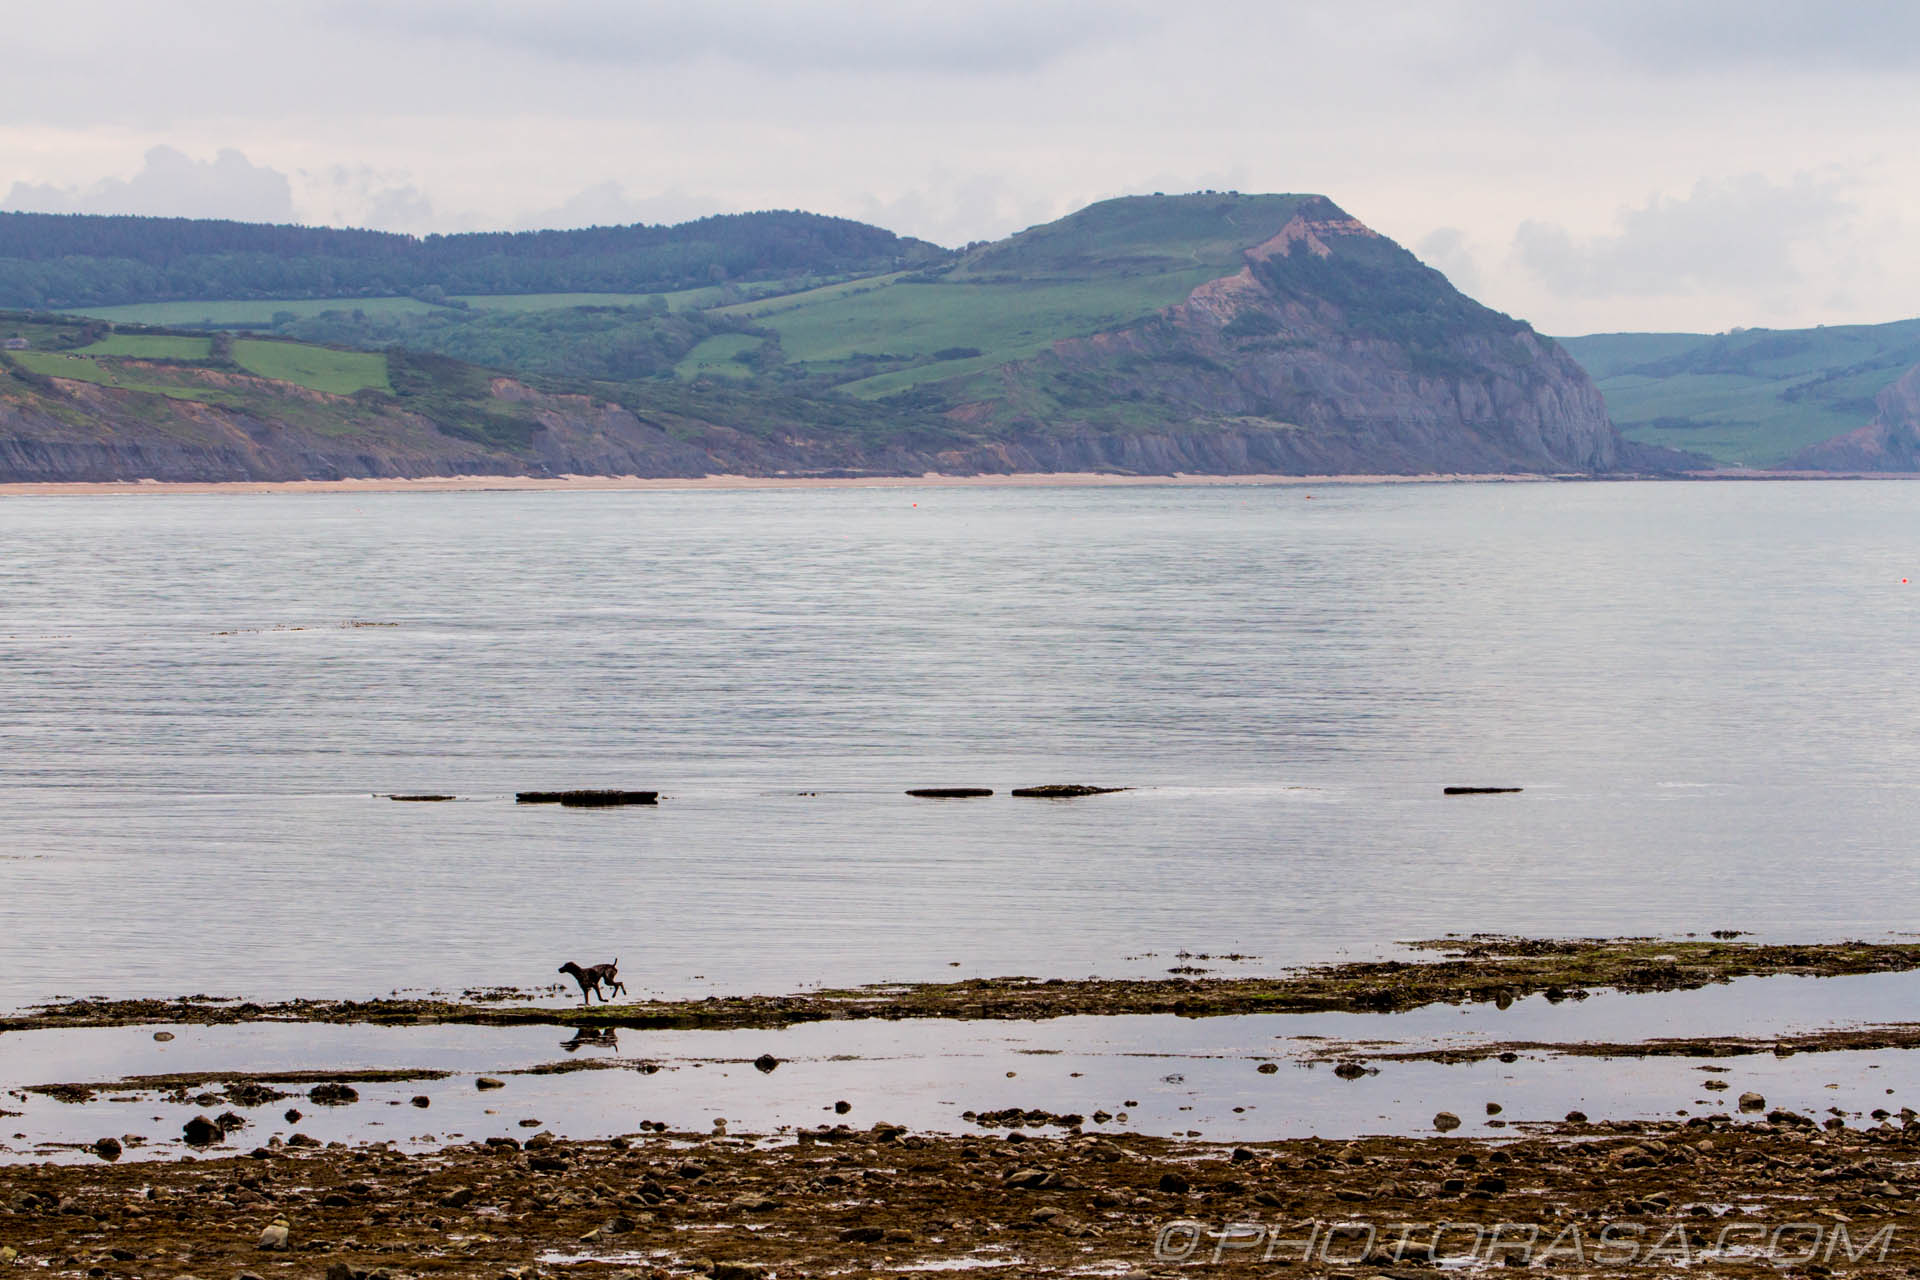 http://photorasa.com/walking-dog-jurassic-coast/dog-and-jurassic-coast/